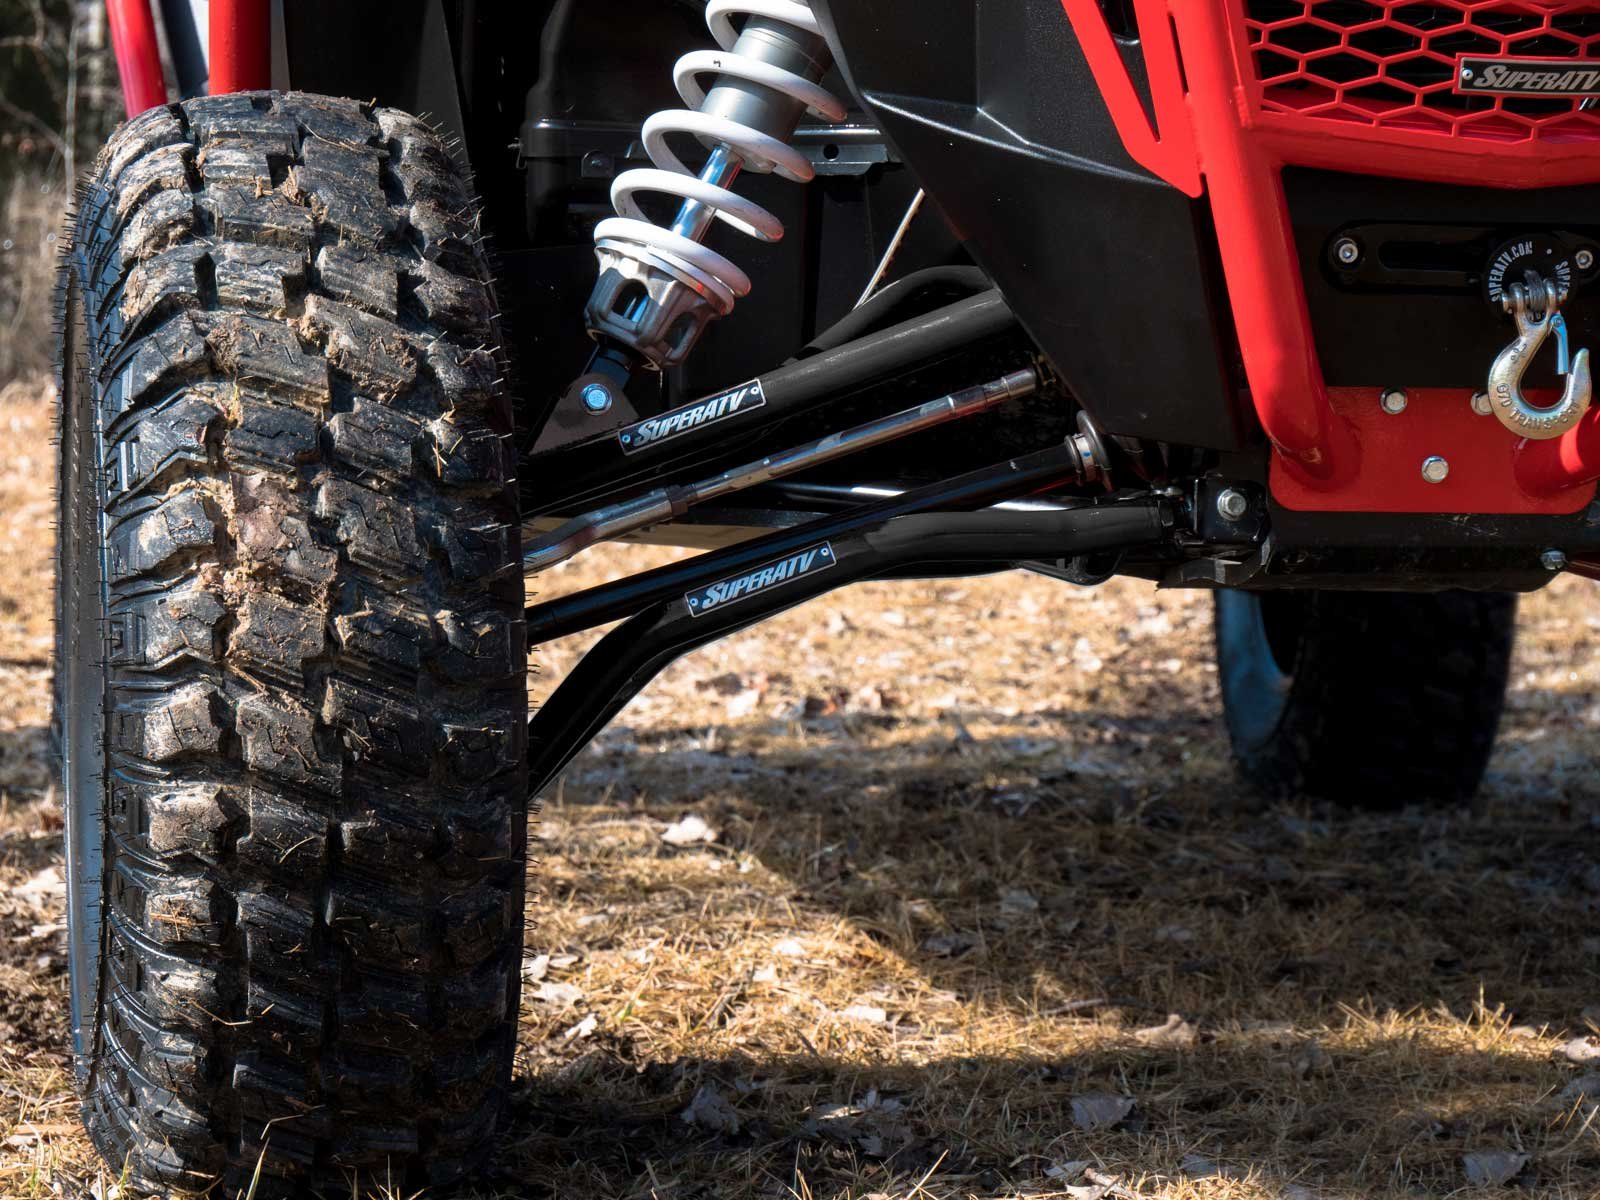 SuperATV High Clearance A-Arms for Polaris RZR XP 1000 / XP 4 1000 (2014+) - Upper and Lower Arms - Black by SuperATV.com (Image #3)